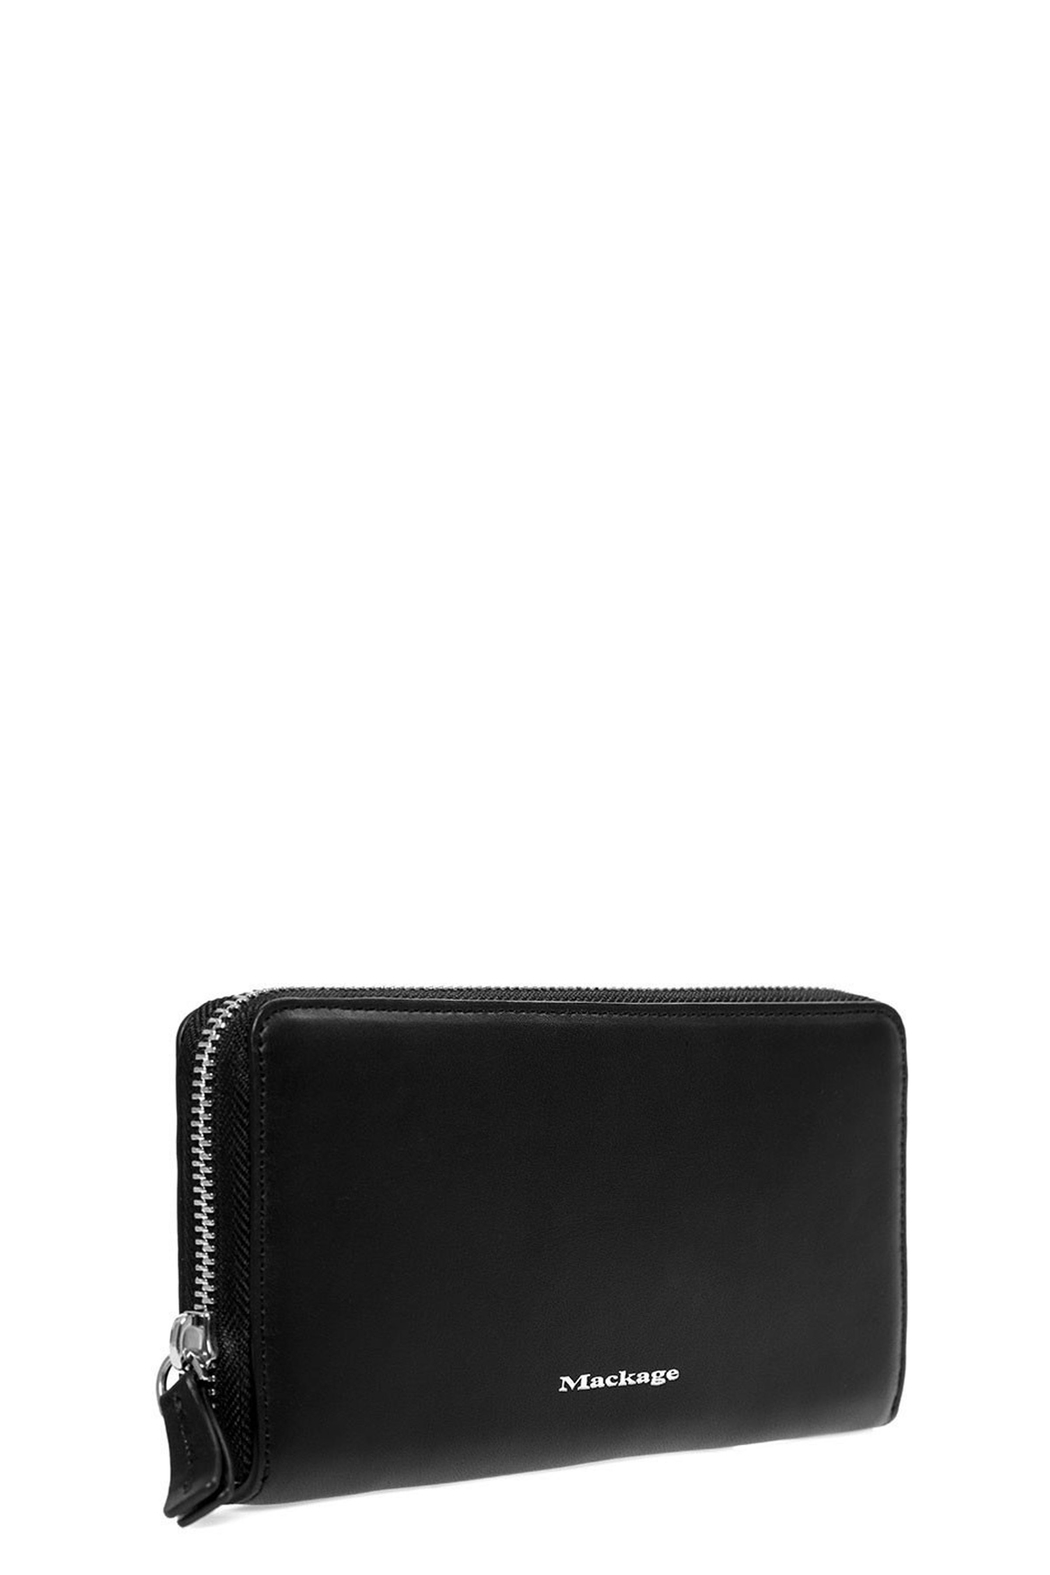 Mackage Duke Leather Zip Wallet - Front Full Image